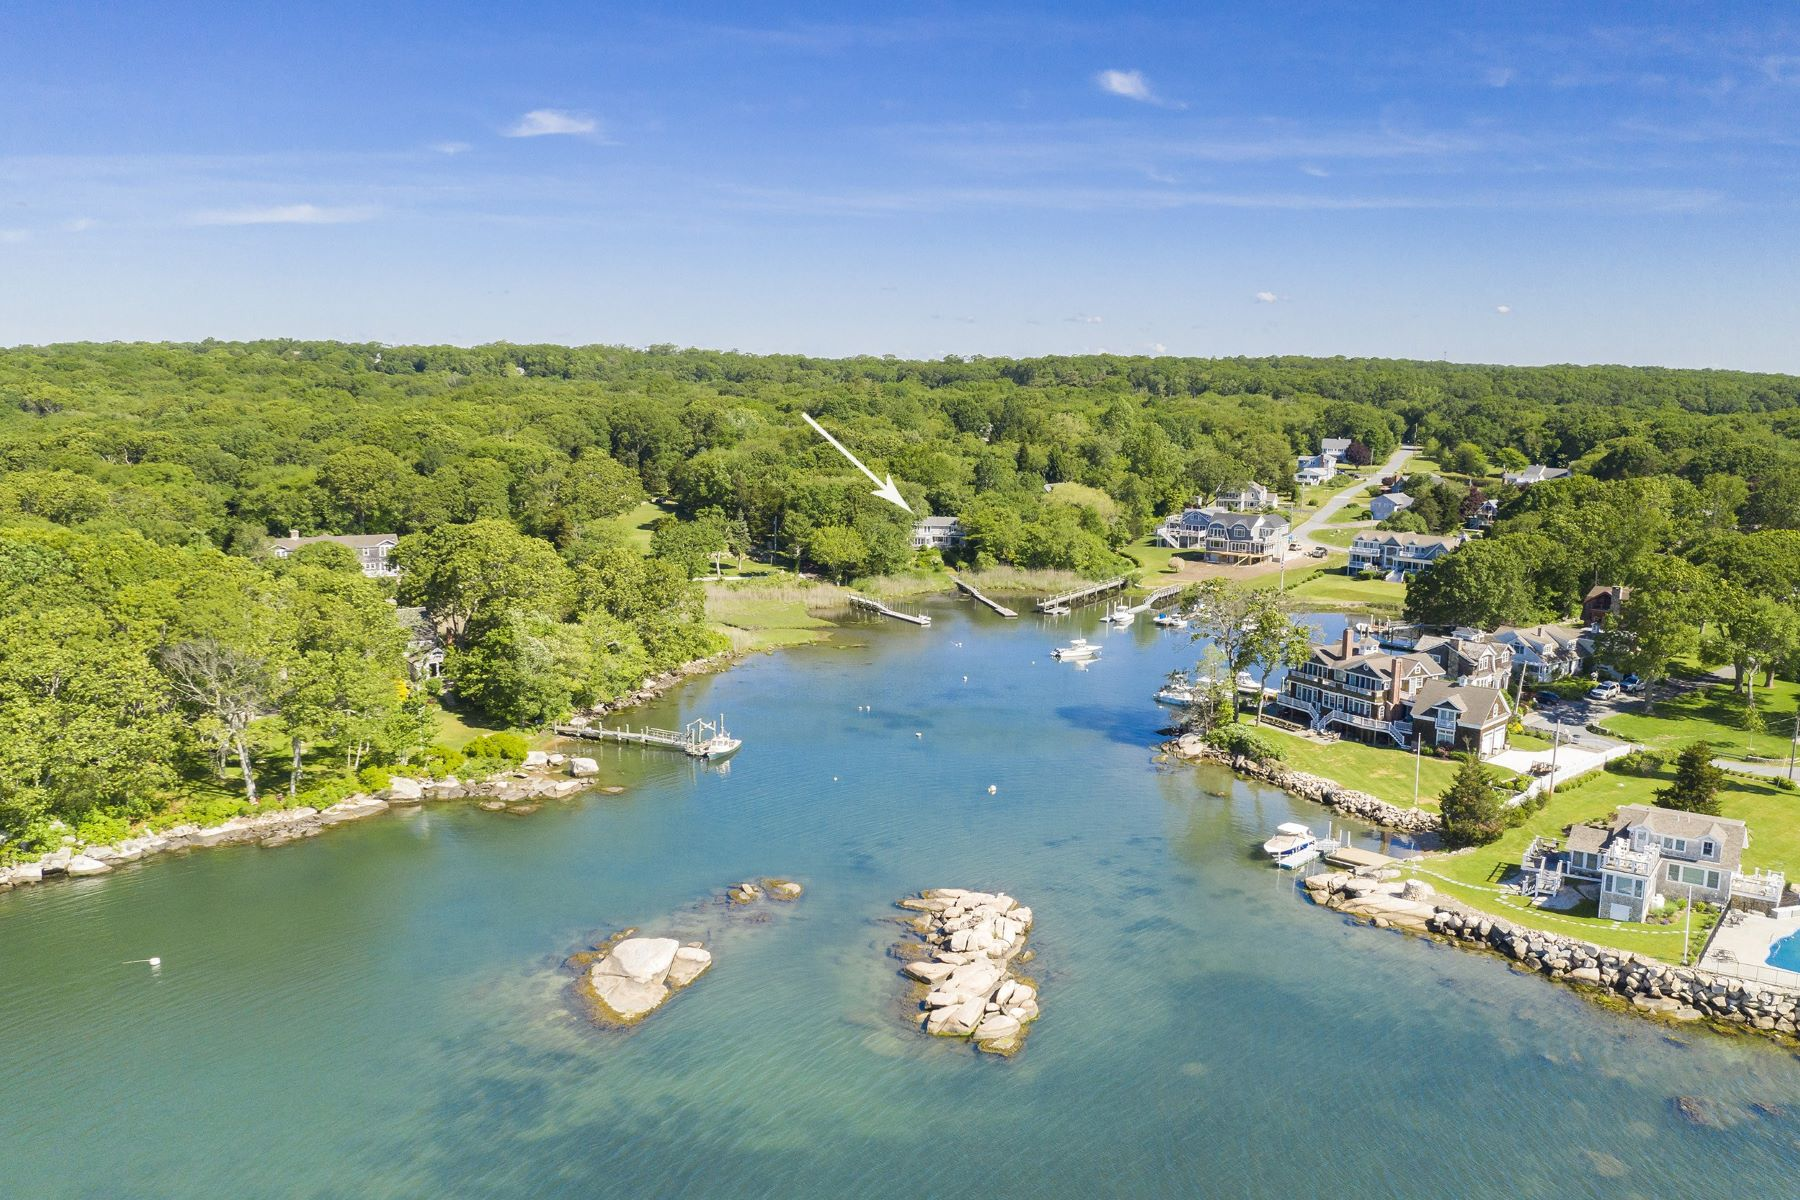 Single Family Homes for Sale at 110 Cove Point E, Charlestown, RI 110 Cove Point E Charlestown, Rhode Island 02813 United States